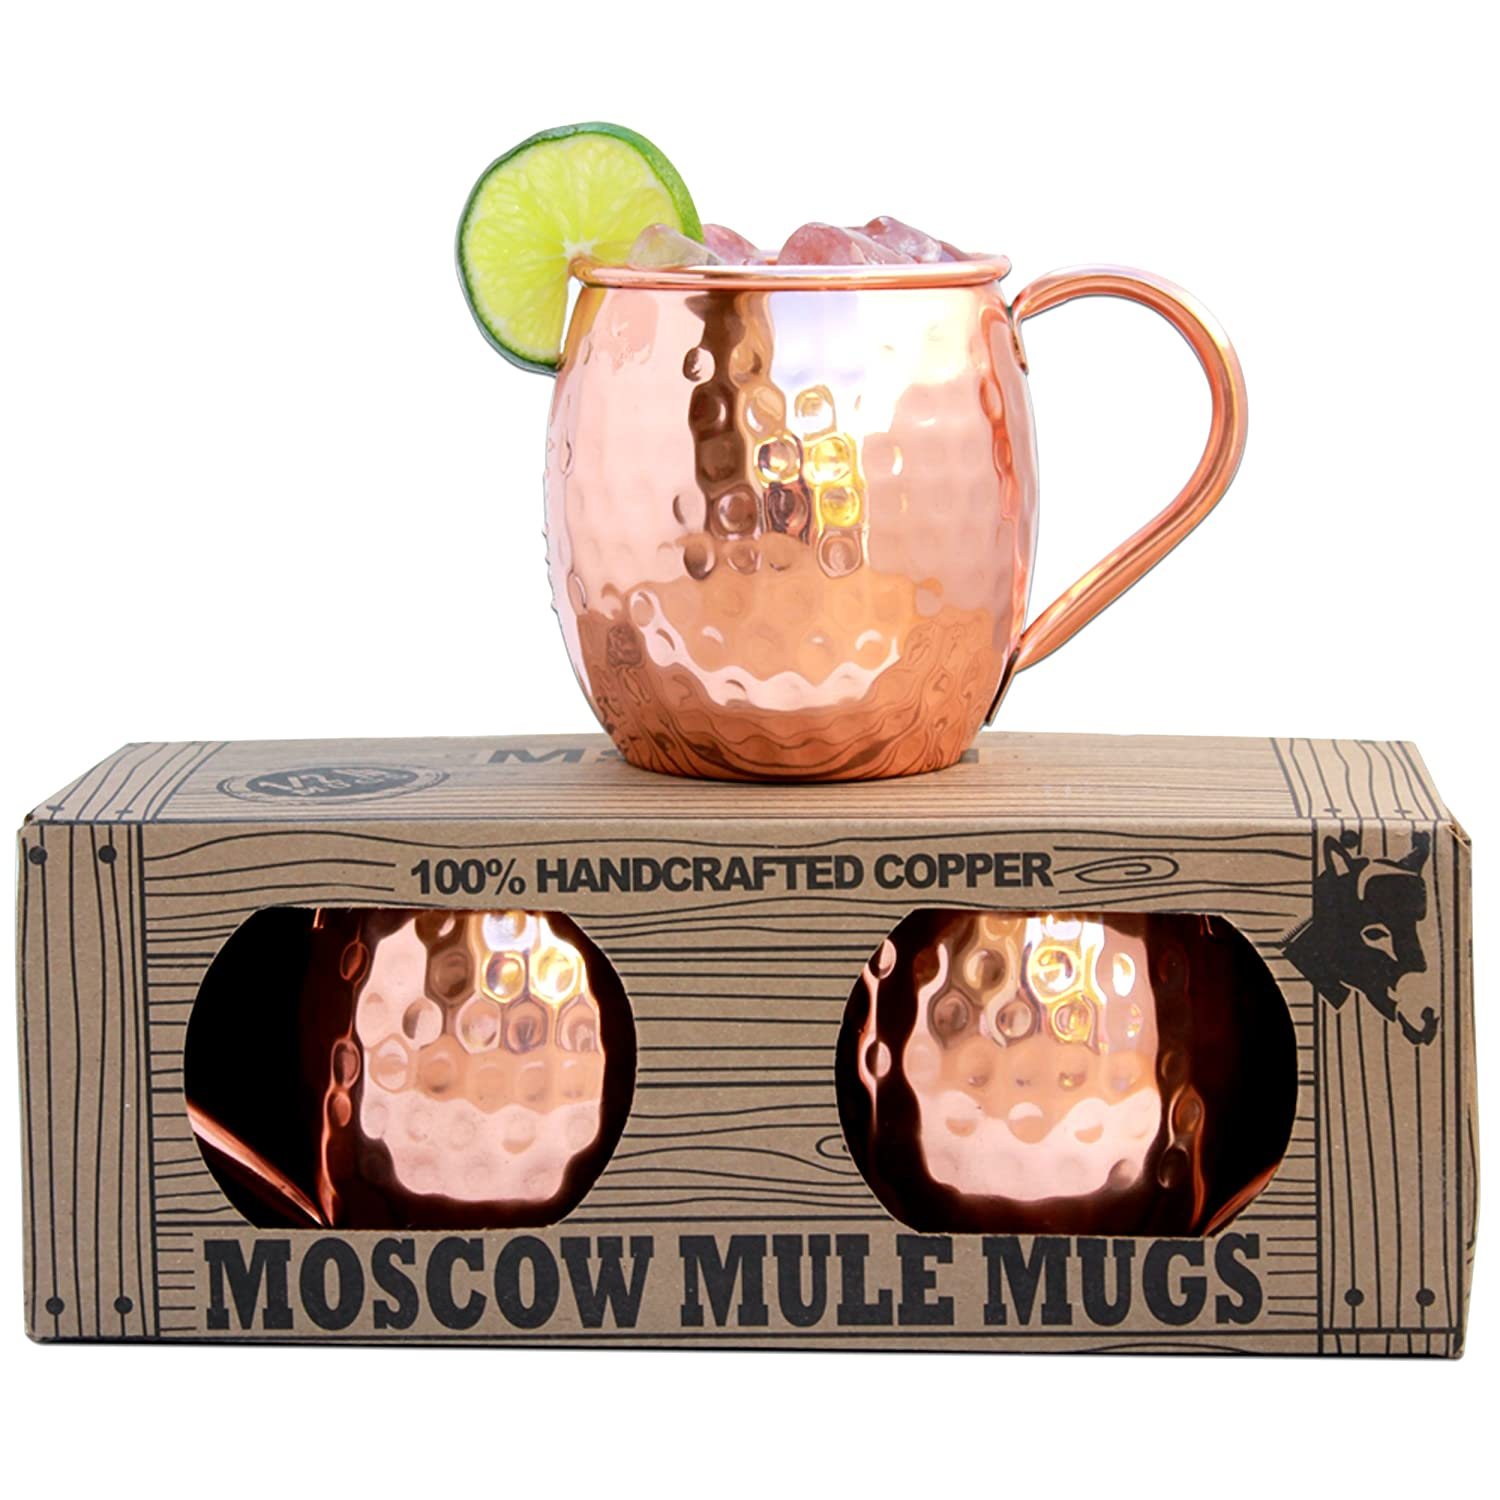 Morken Barware Moscow Mule Mugs - Set of 2 - Premium 1/2 Pound Mugs - 100% Solid Copper - Hammered Finish - 16oz NA